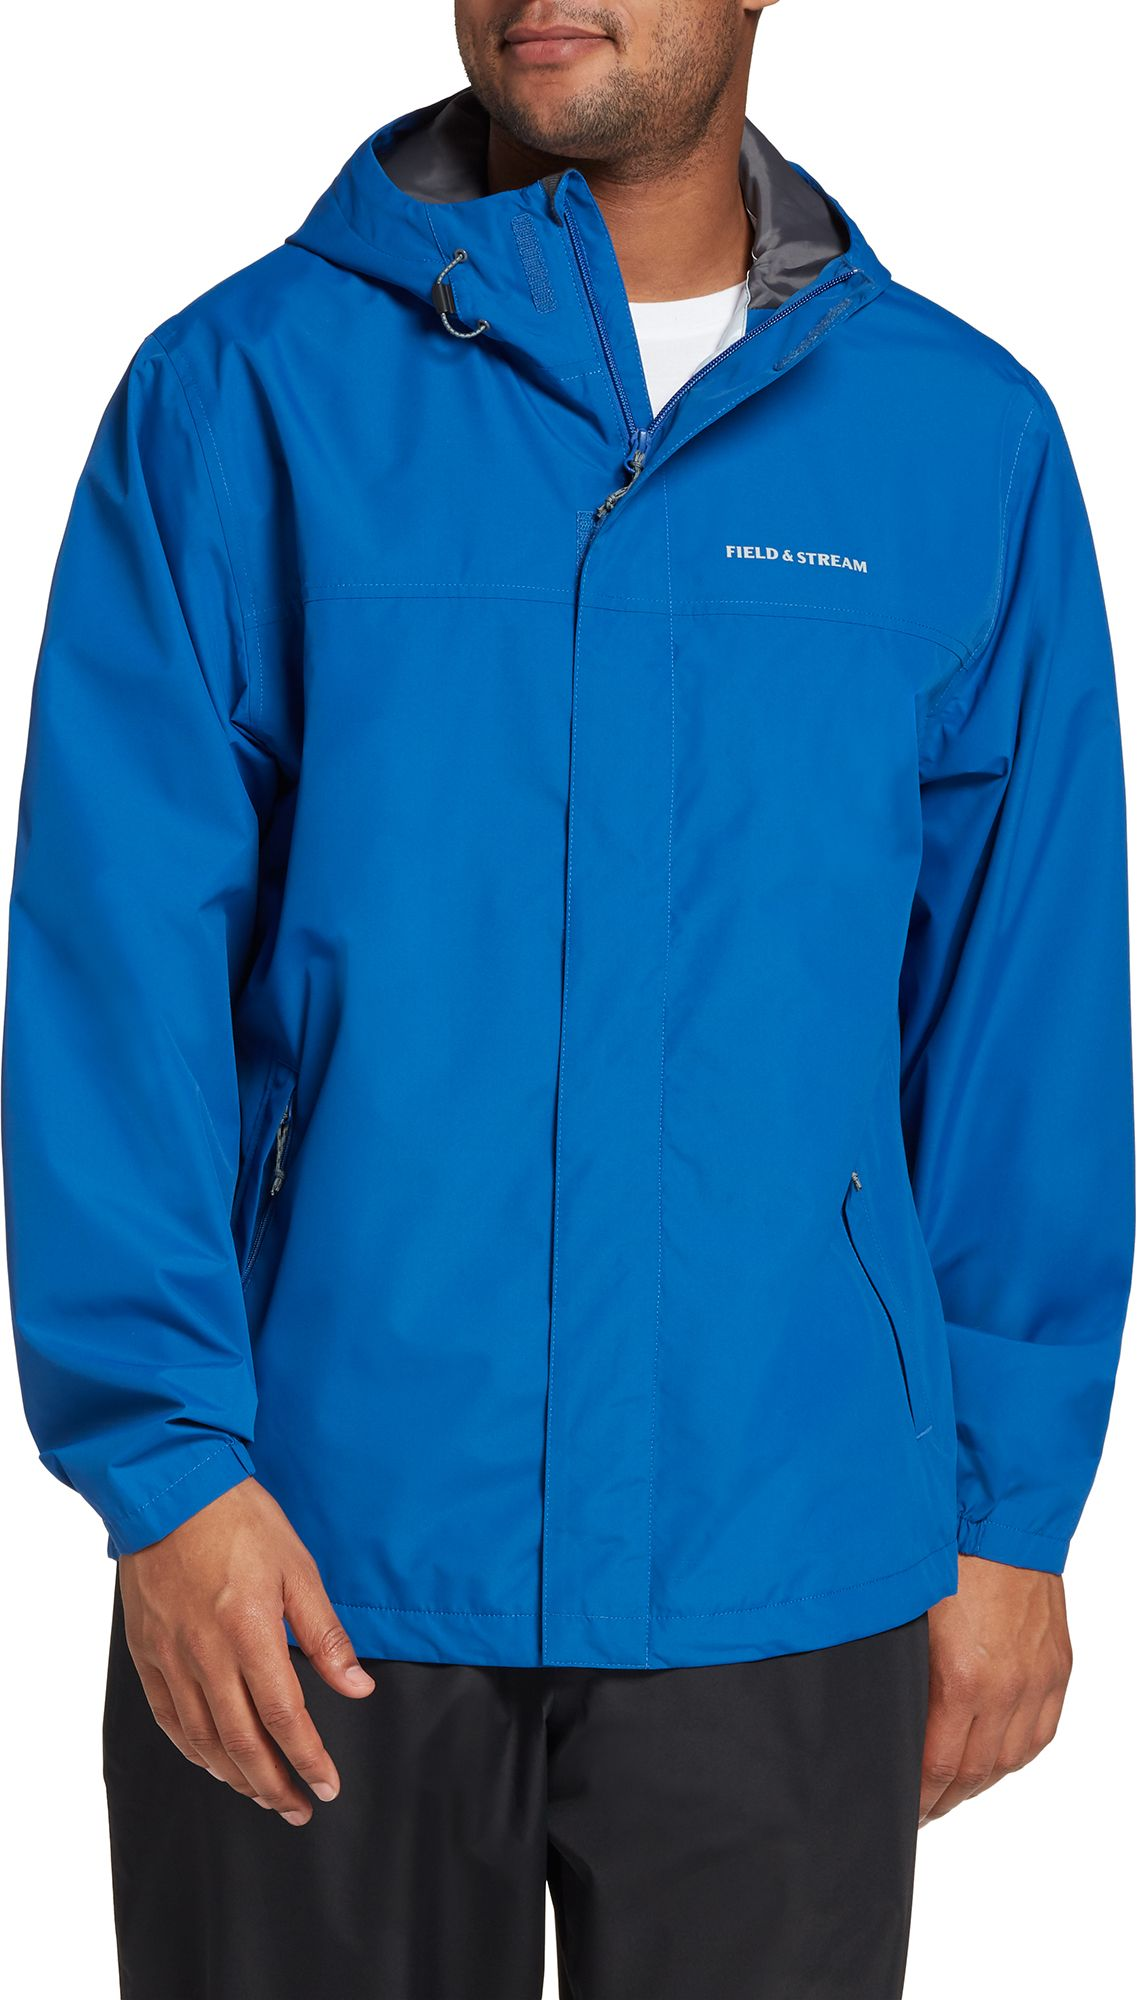 Field & Stream Men's Packable Rain Jacket, Small, Blue